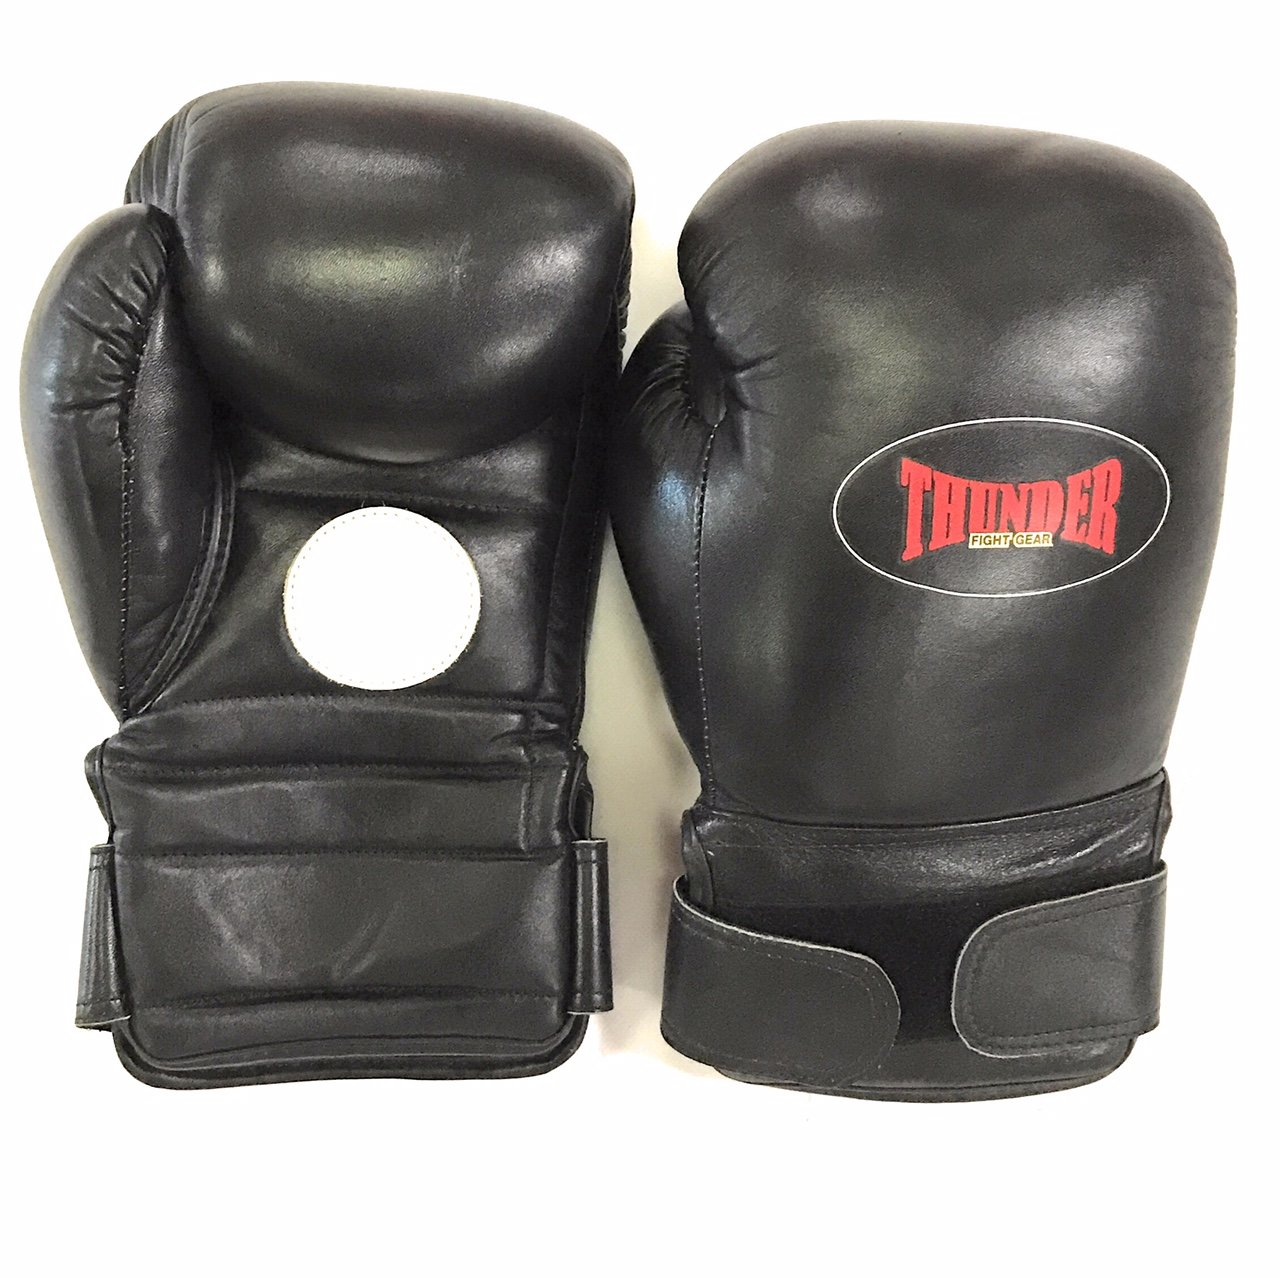 Coaching Focus Mitts